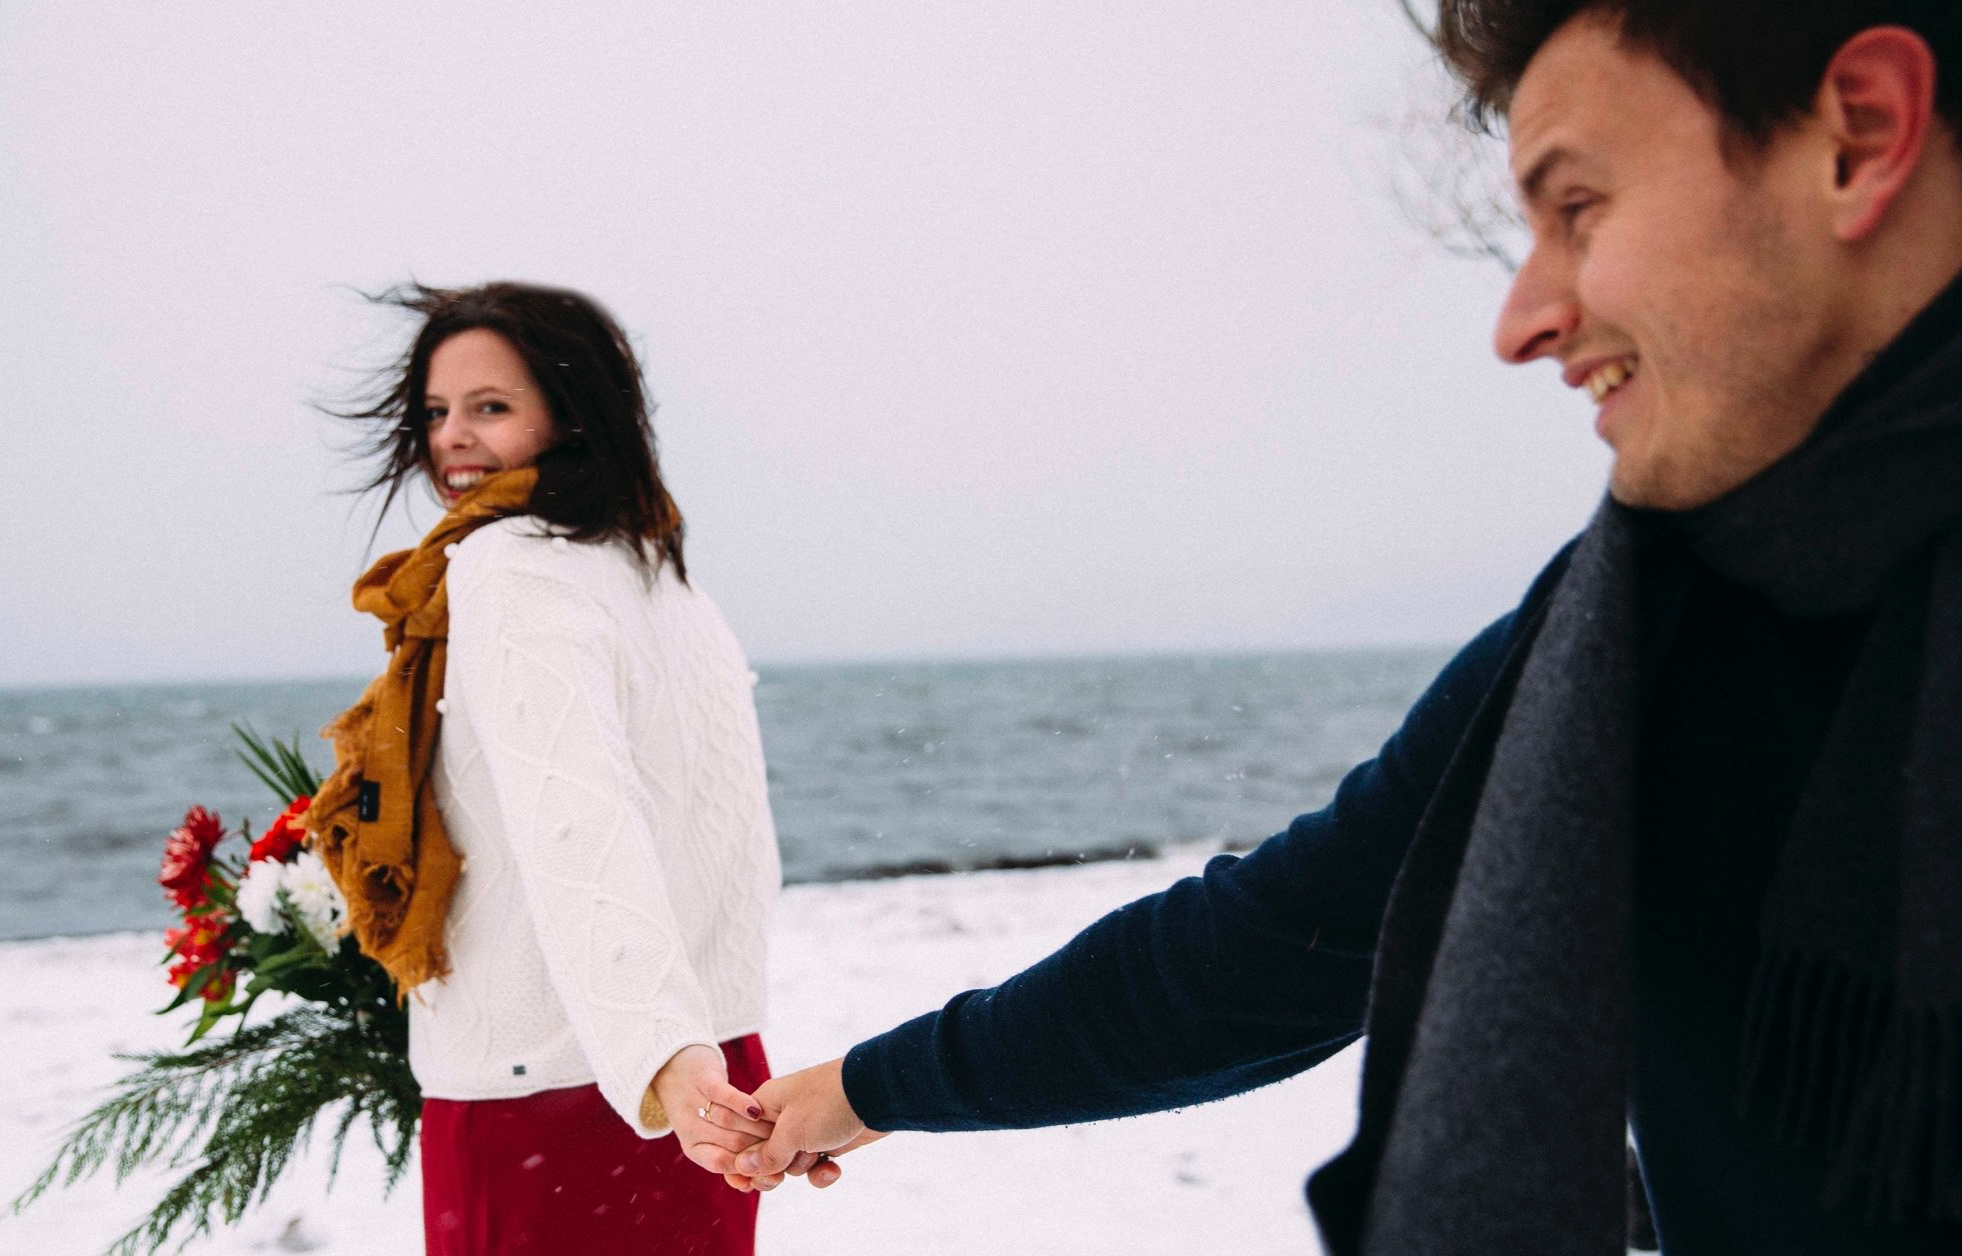 Winter engagement at Gyro beach in Kelowna